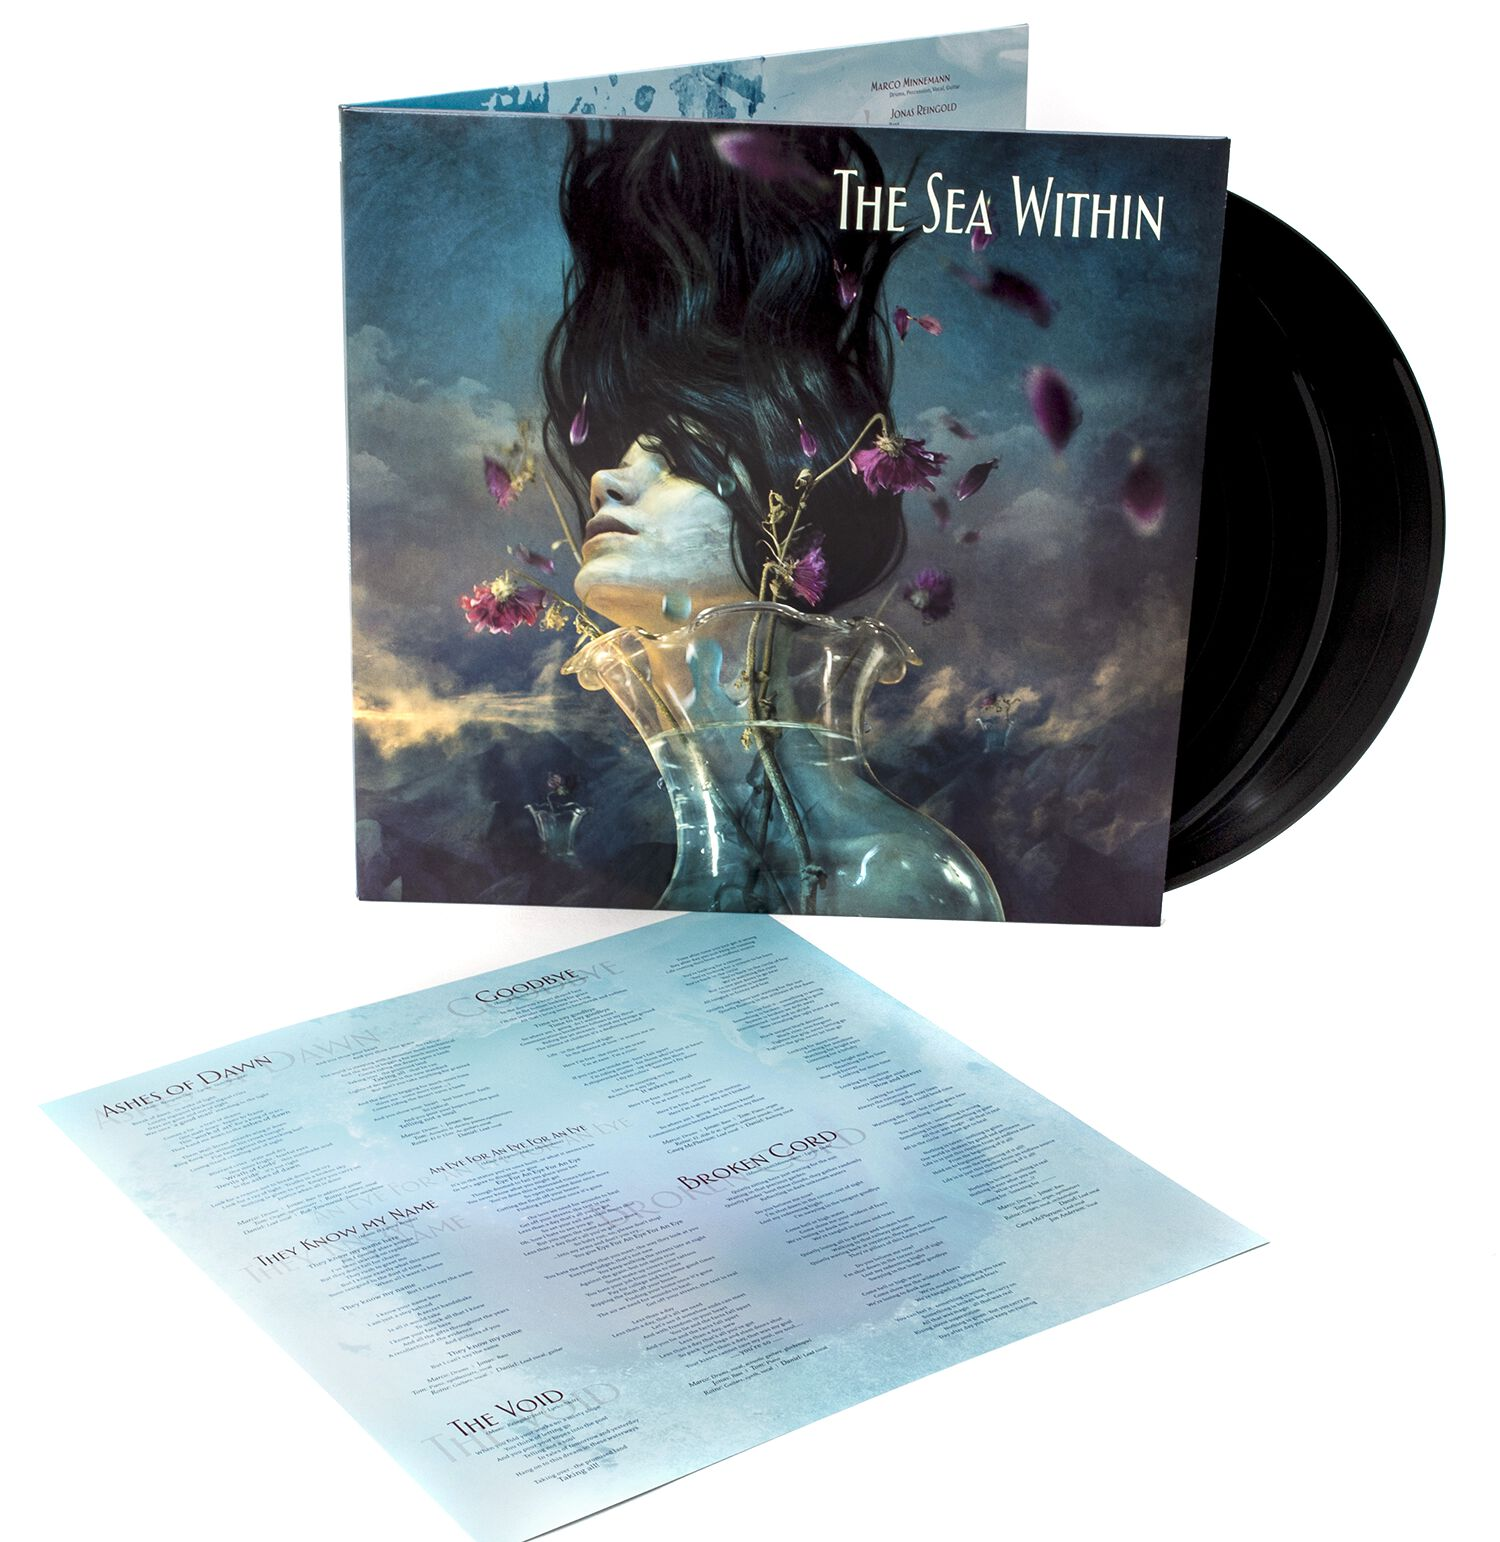 The Sea Within The Sea Within 2-LP & 2-CD Standard